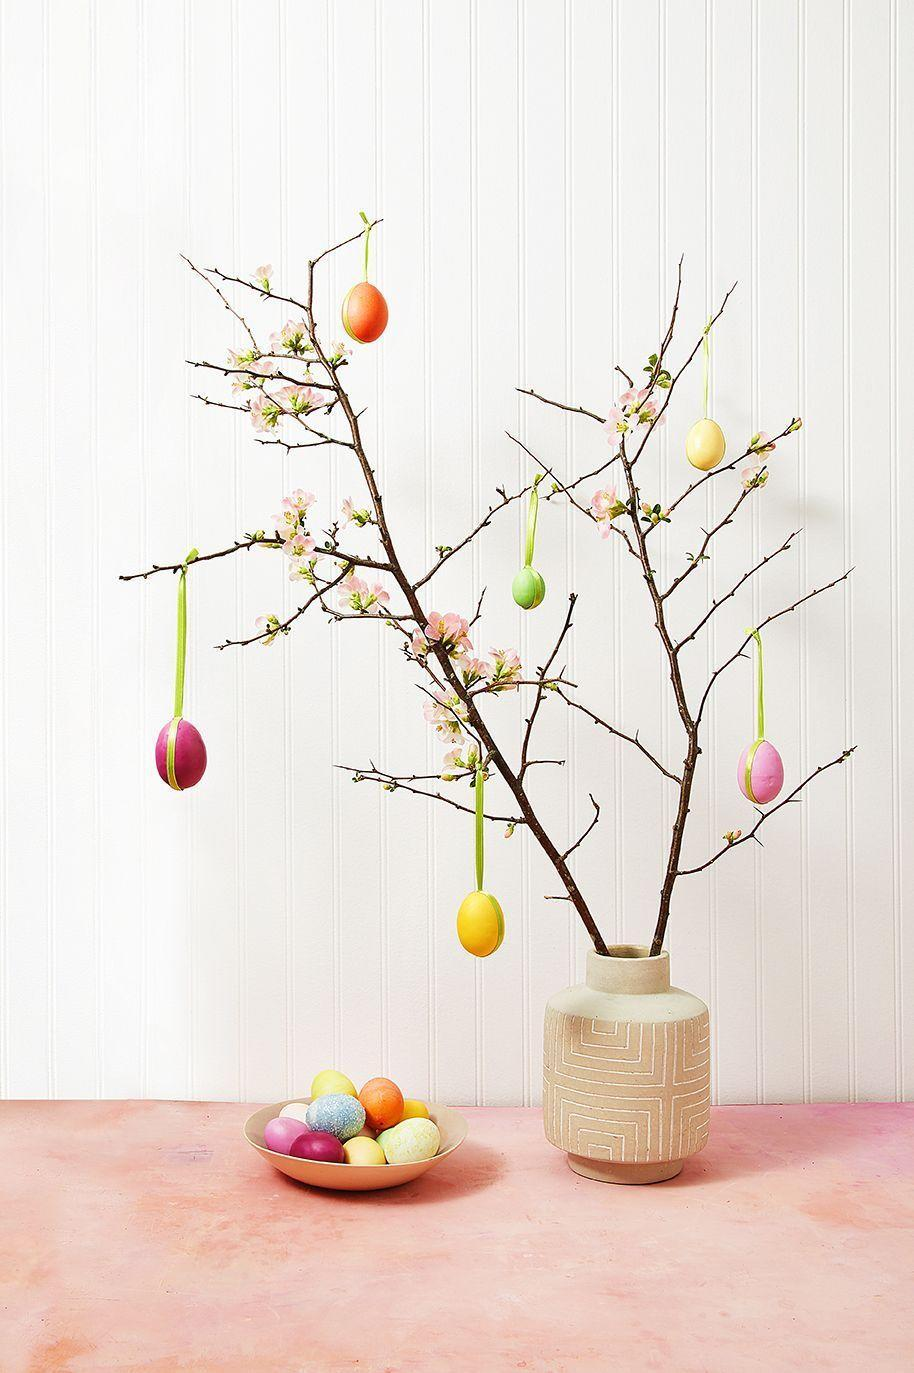 """<p>If you love sturdy branches like cherry blossoms, give them a new look for the holiday. Place a few in your favorite vase and dress them up with colorful egg ornaments that are decked out with pretty ribbon. <br><br><strong>RELATED</strong>: <a href=""""https://www.goodhousekeeping.com/holidays/easter-ideas/g26809936/diy-easter-tree-ideas/"""" rel=""""nofollow noopener"""" target=""""_blank"""" data-ylk=""""slk:How to Properly Decorate an Easter Tree"""" class=""""link rapid-noclick-resp"""">How to Properly Decorate an Easter Tree</a></p>"""